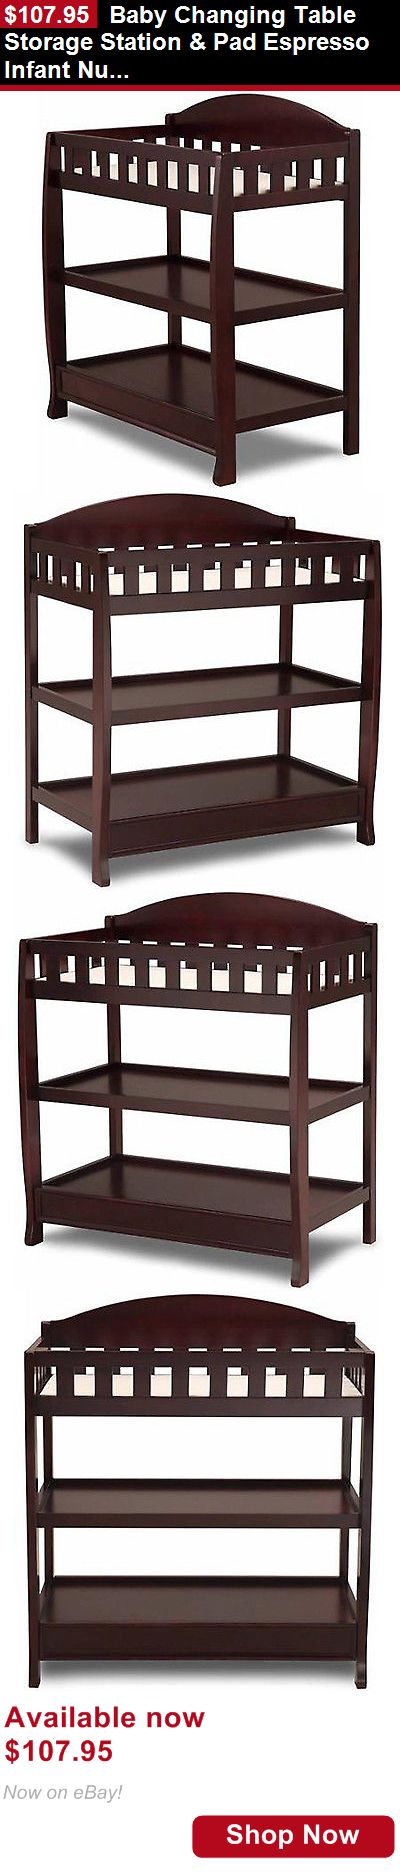 Changing Tables: Baby Changing Table Storage Station And Pad Espresso Infant Nursery Wood Dresser BUY IT NOW ONLY: $107.95